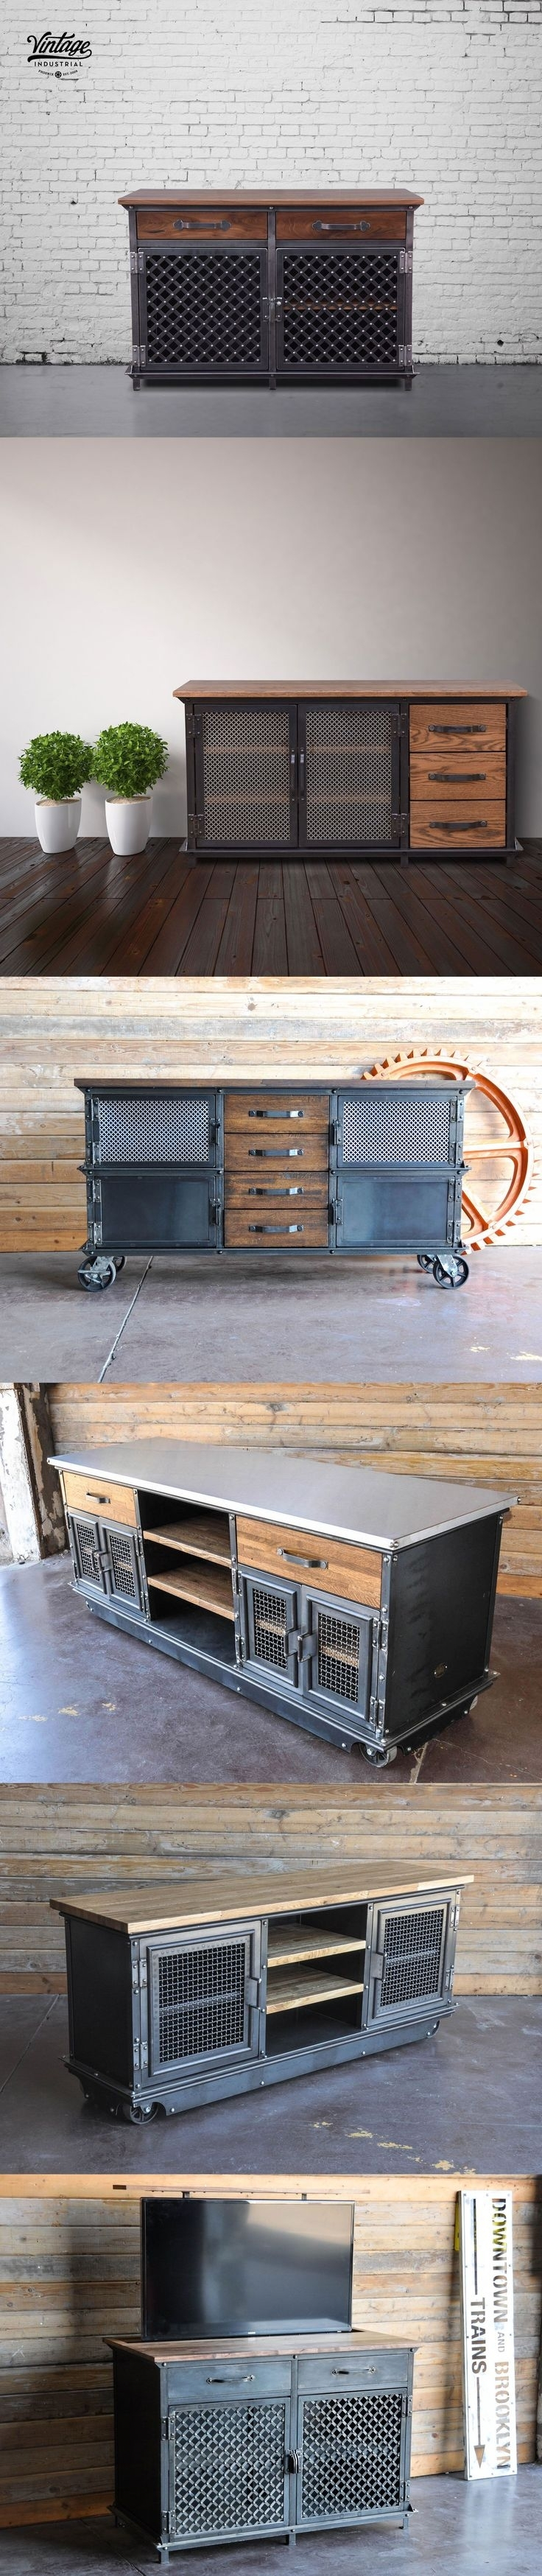 21 Best Diy Images On Pinterest | Home Ideas, Furniture And Woodworking for Marbled Axton Sideboards (Image 2 of 26)